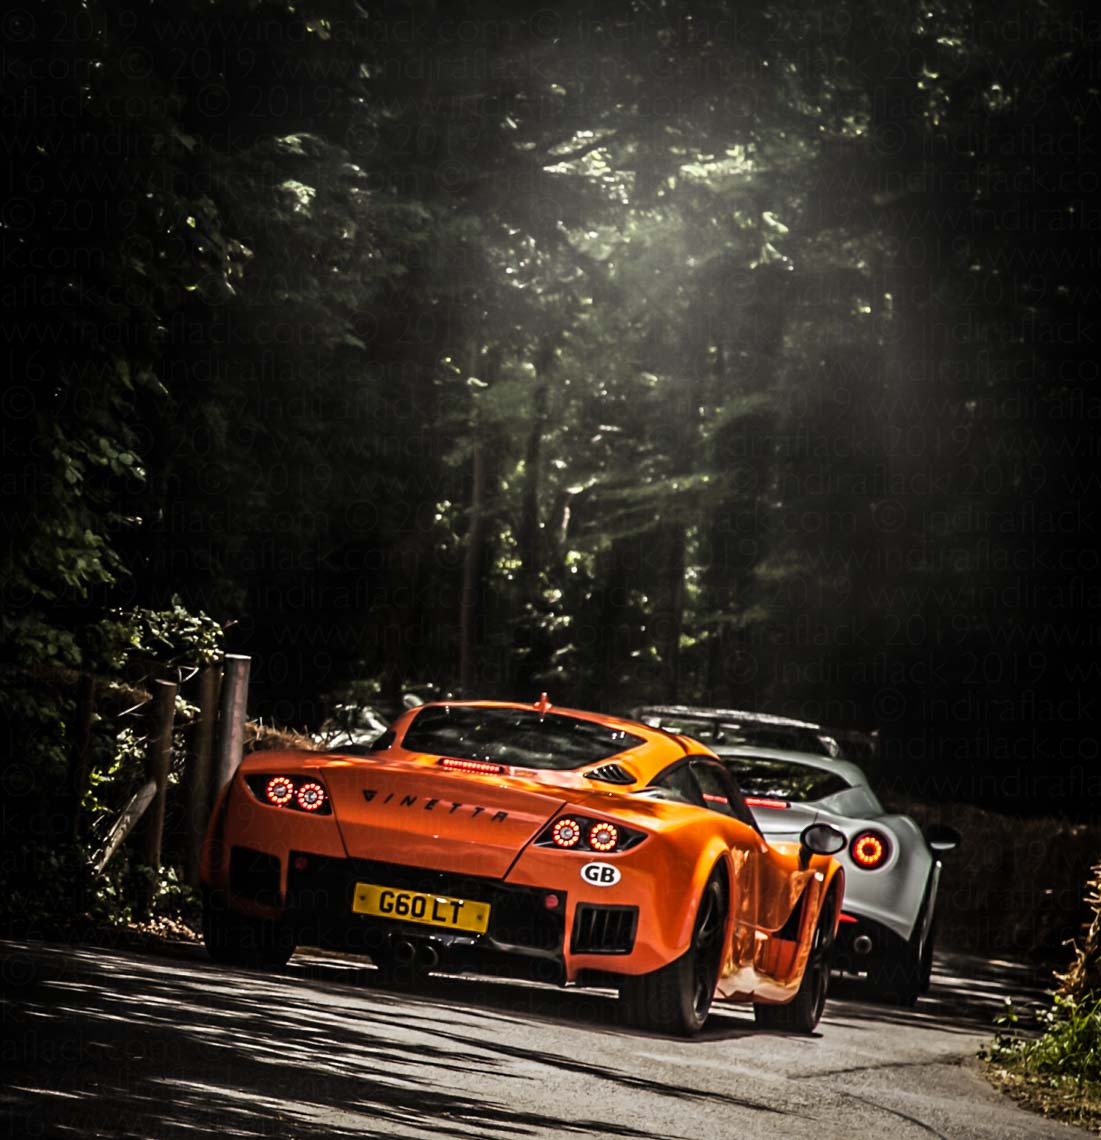 Goodwood Festival of Speed Ginetta leaving paddock at Goodwood Festival of Speed captured Indira Flack Photography